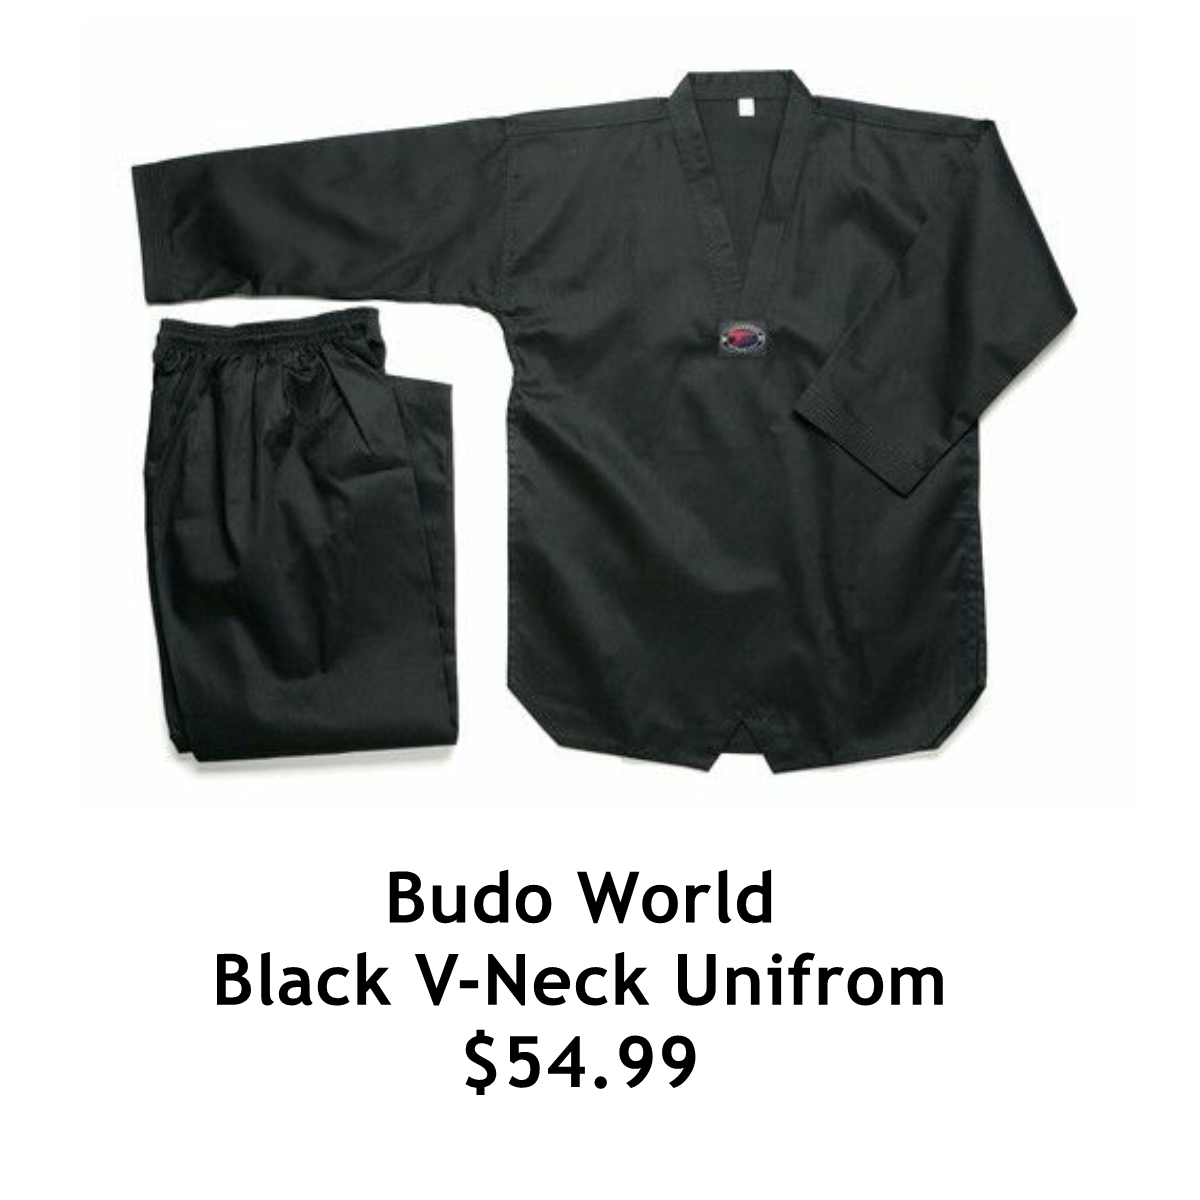 Black V-Neck Uniform $54.99